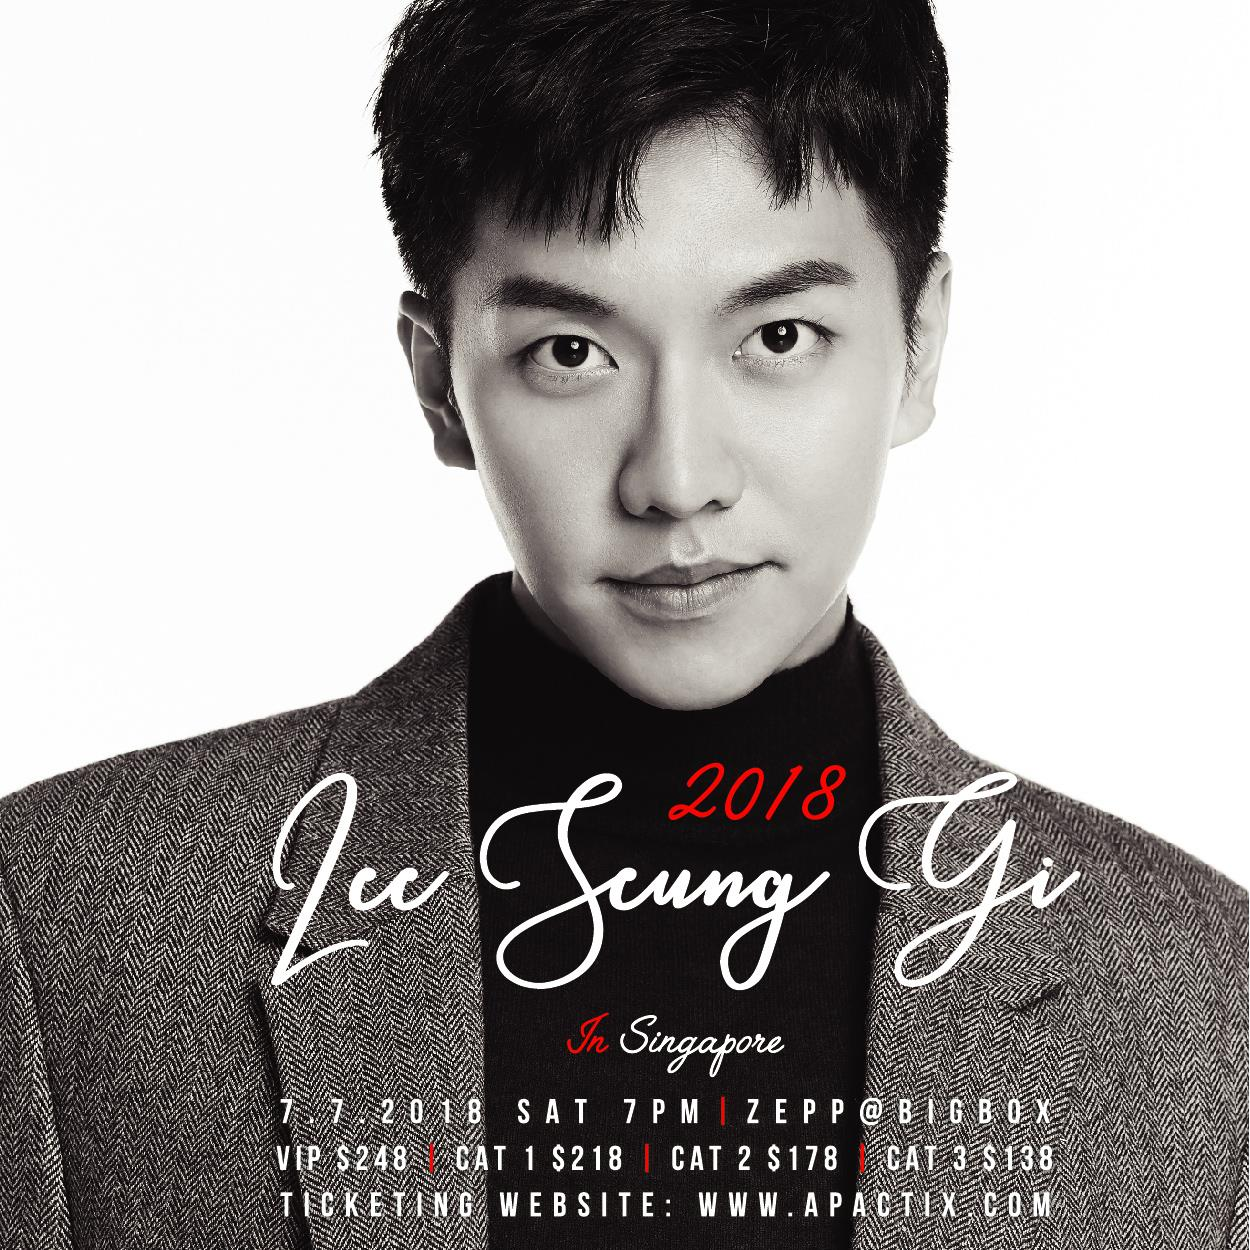 Mark Your Date For Lee Seung Gi Fanmeet In Singapore This